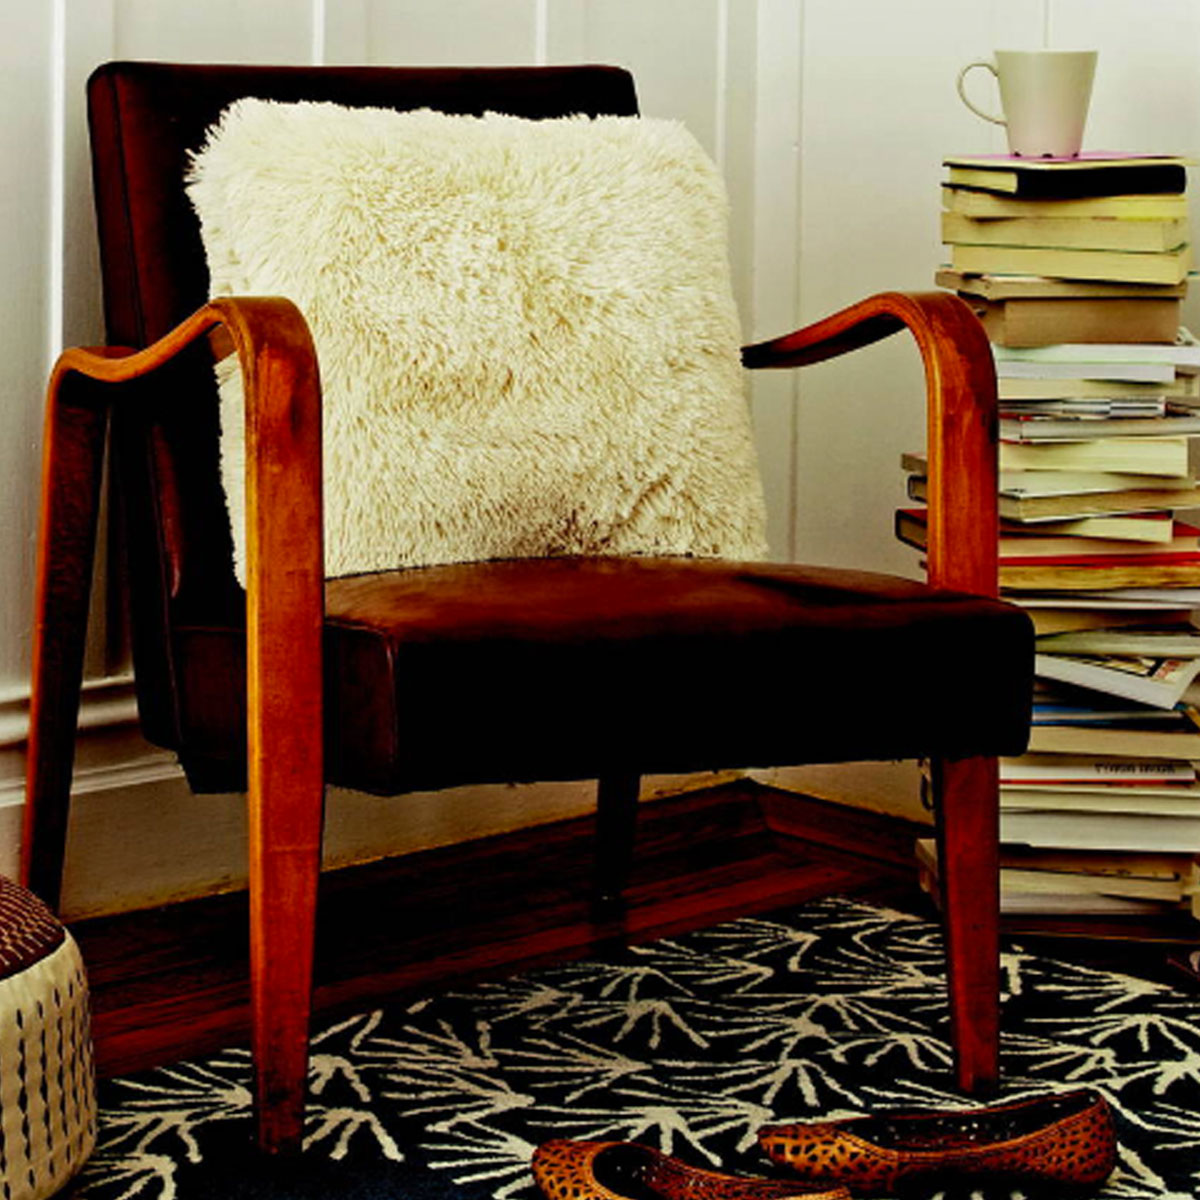 sheepskin pillow and stack of books